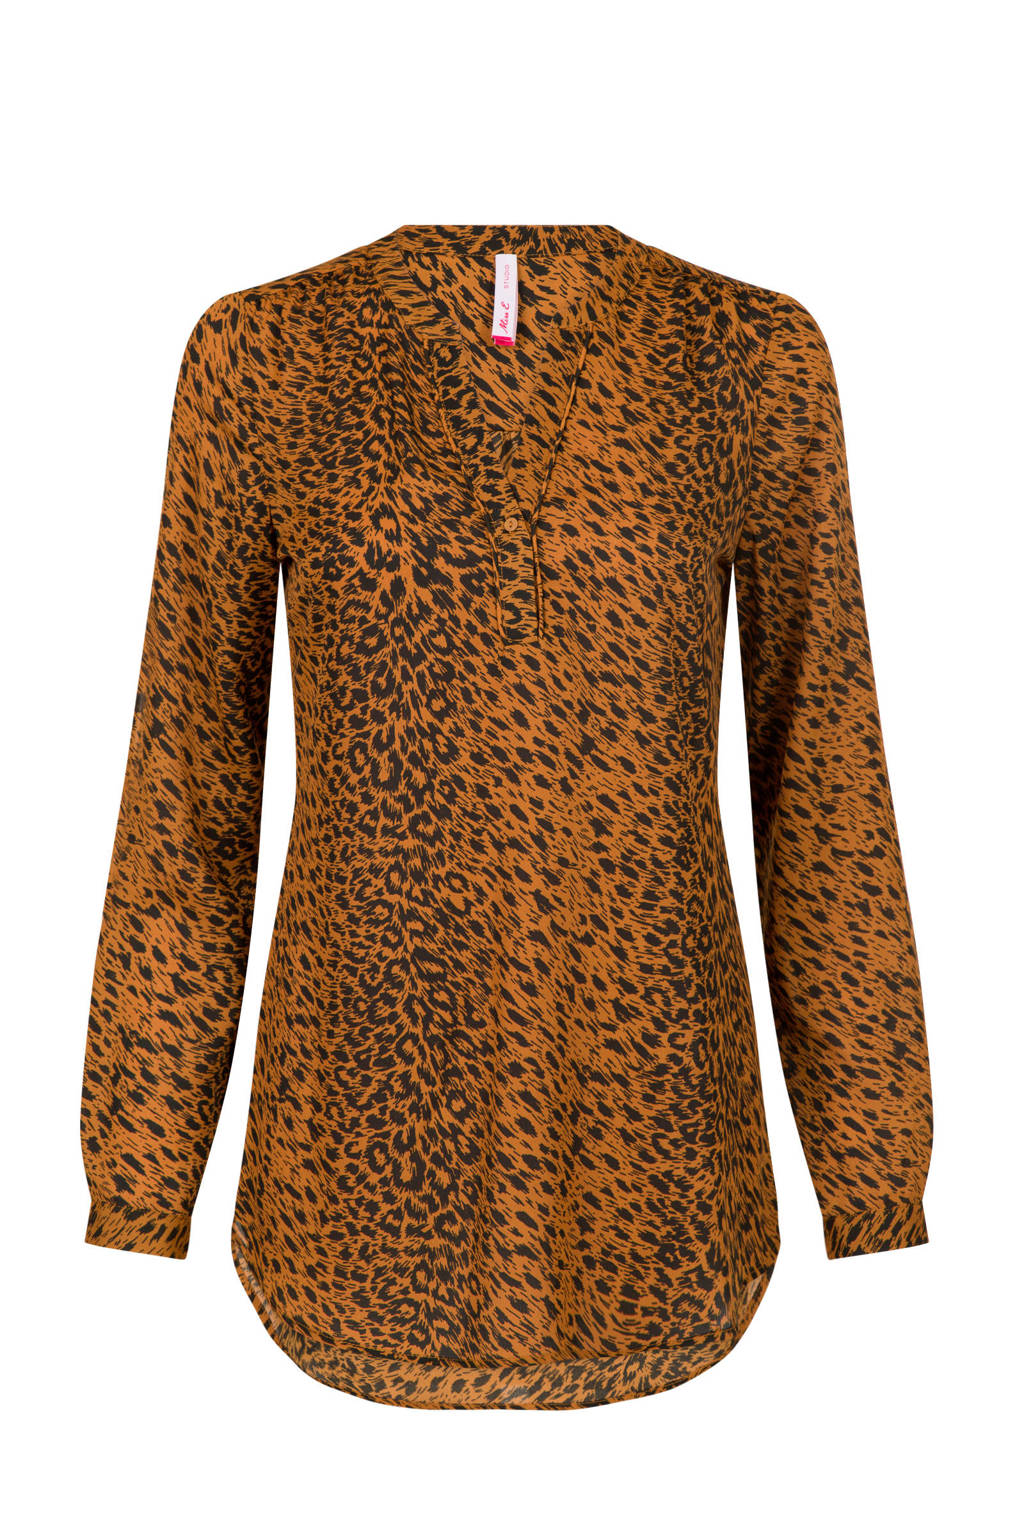 Miss Etam Regulier top met all over print bruin, Bruin